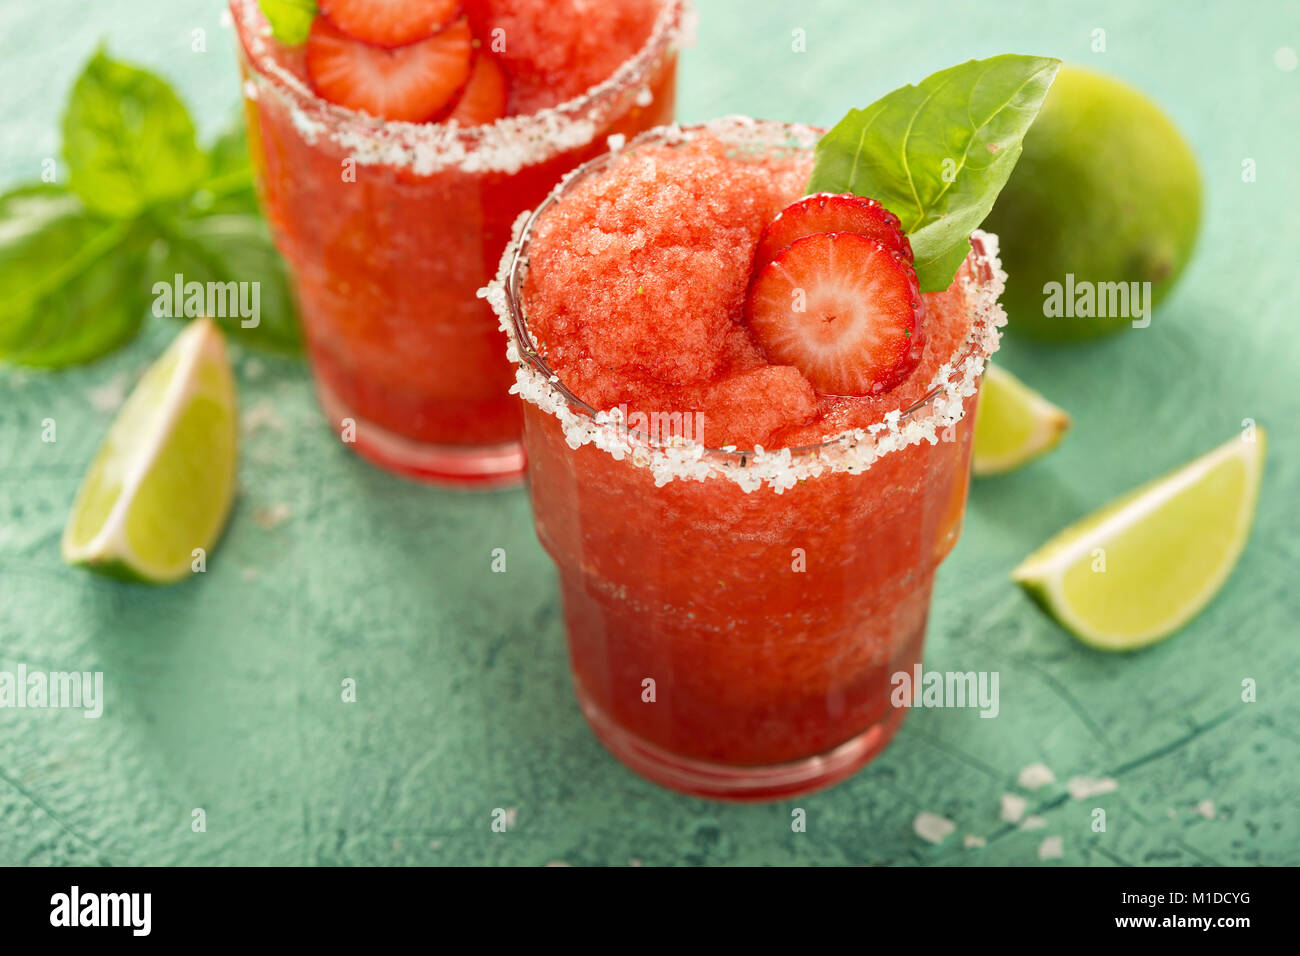 Frozen strawberry margarita lime Photo Stock